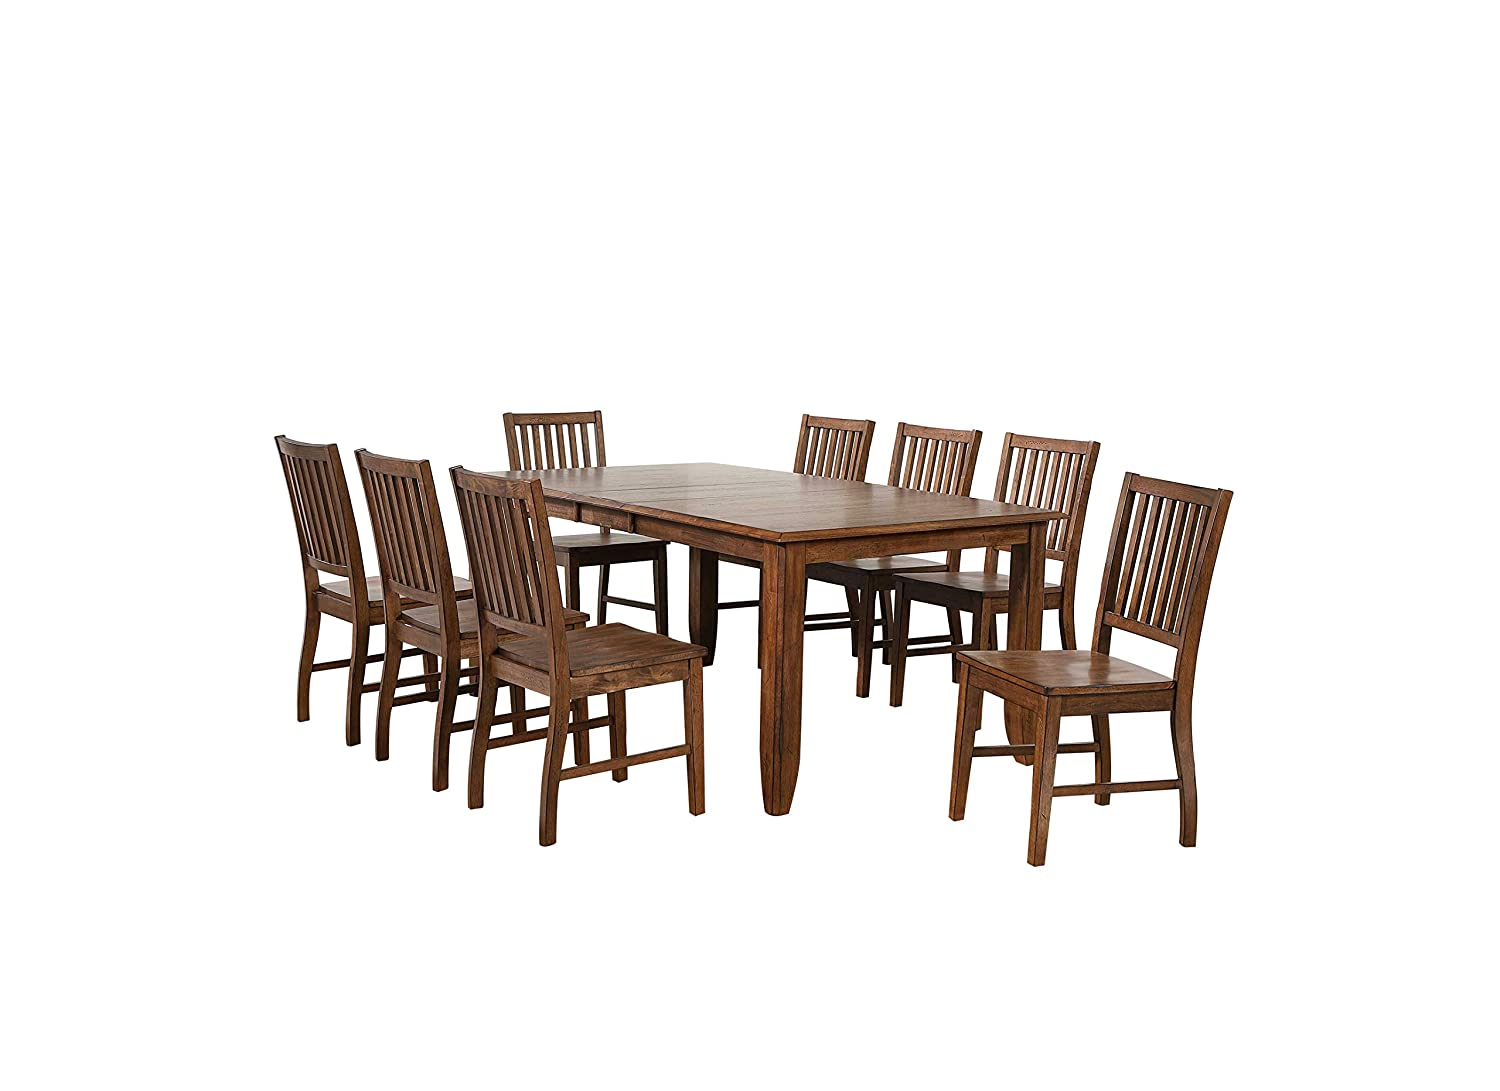 Sunset Trading Simply Brook Dining Table Set, Two size, Amish Brown